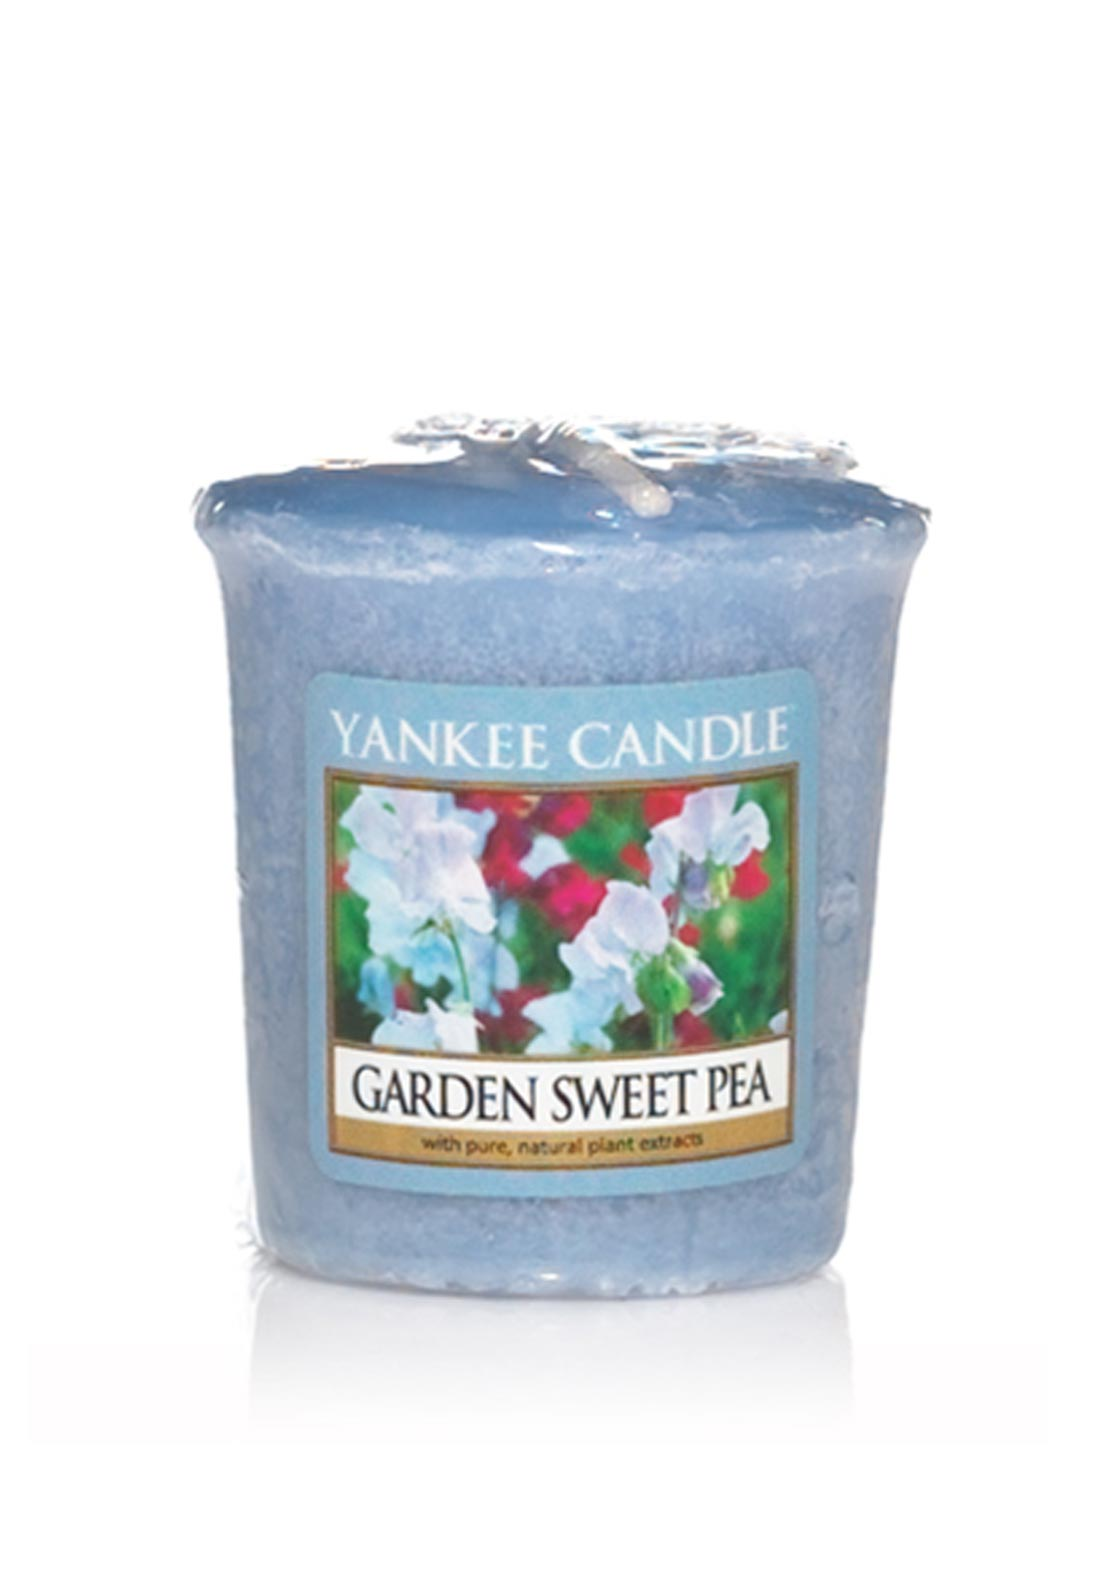 Yankee Candle Sample Votive Candle, Garden Sweet Pea